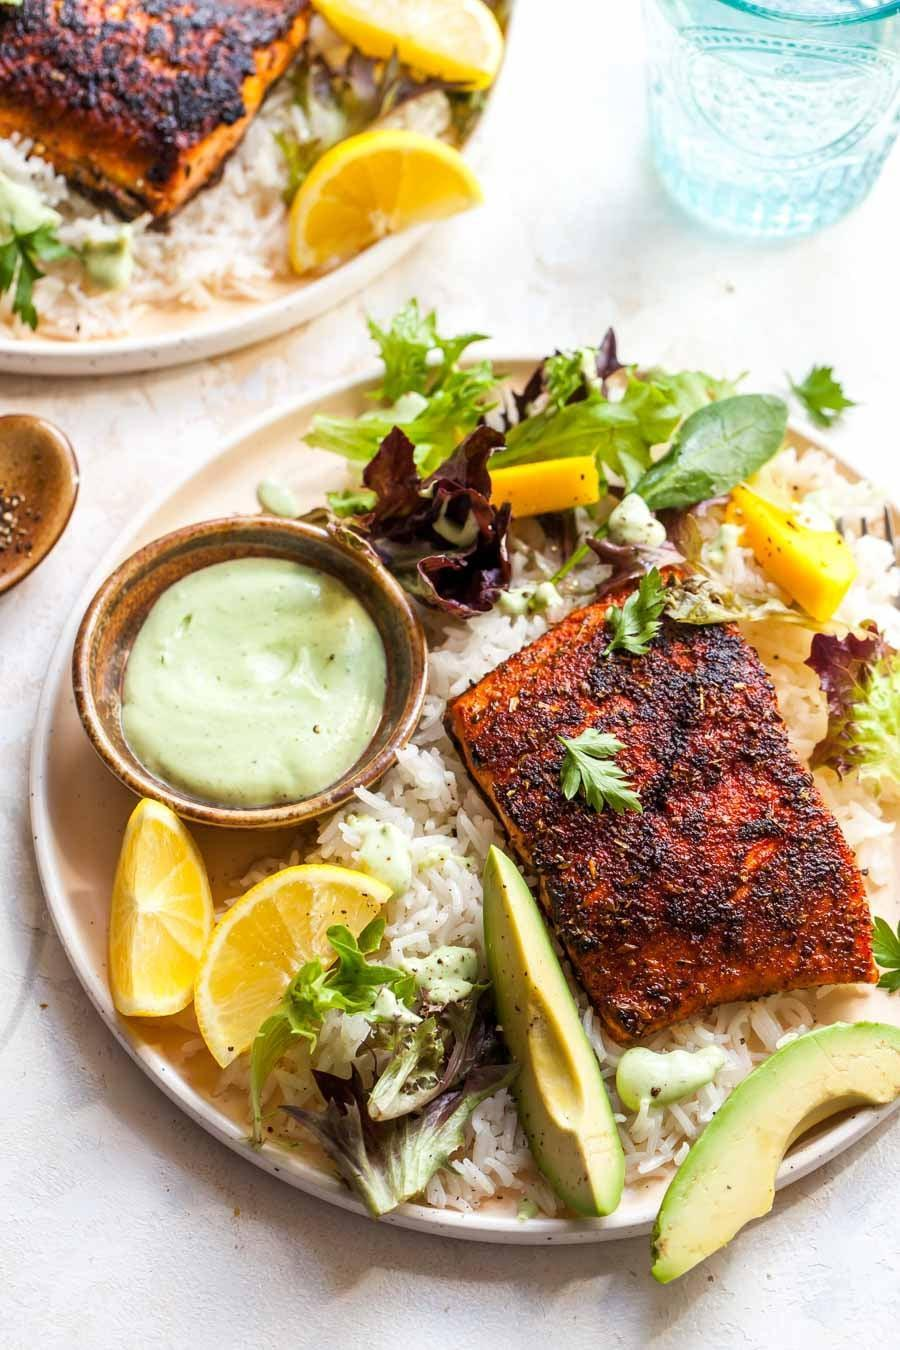 "<p>Those in Delaware know a good piece of fish when they see one, and salmon never disappoints. This blackened salmon recipe features a homemade avocado ranch that's seriously good.</p> <p><strong>Get the recipe</strong>: <a href=""https://dishingouthealth.com/blackened-salmon-avocado-ranch/"" class=""link rapid-noclick-resp"" rel=""nofollow noopener"" target=""_blank"" data-ylk=""slk:blackened salmon"">blackened salmon</a></p>"